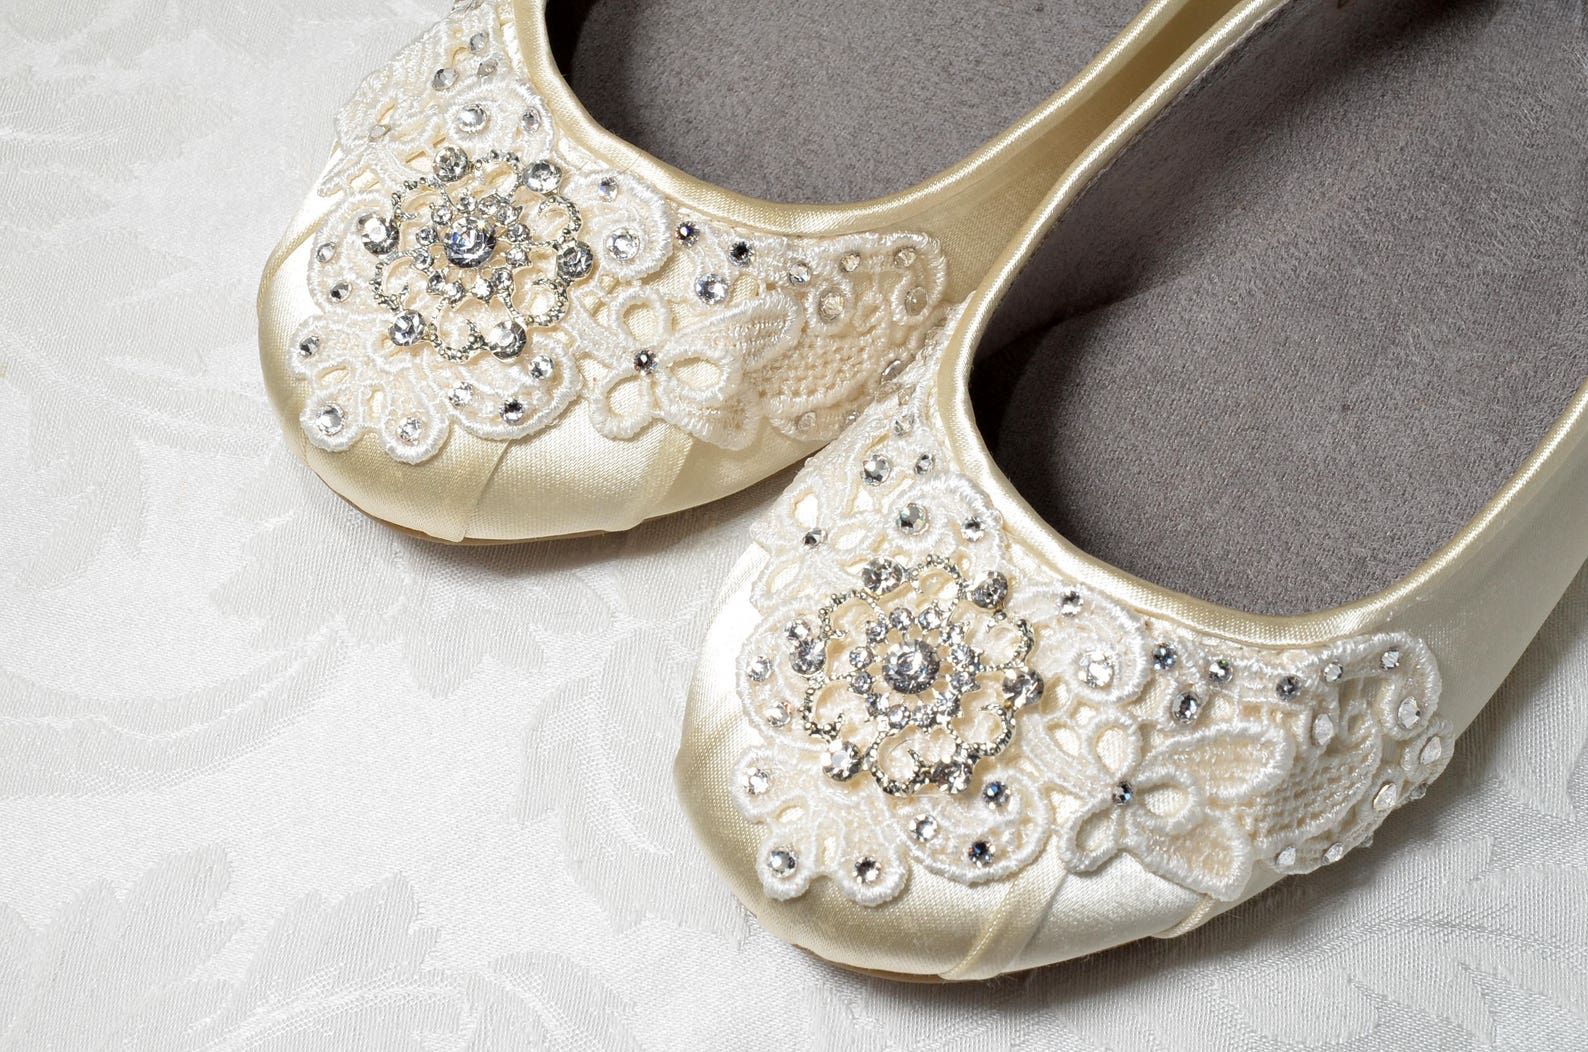 24a842c765bce Women s Wedding Shoes- Free Custom Colors- Lace Ballet Flats Bridal Shoes  Vintage Crystal Embellished Bridesmaid